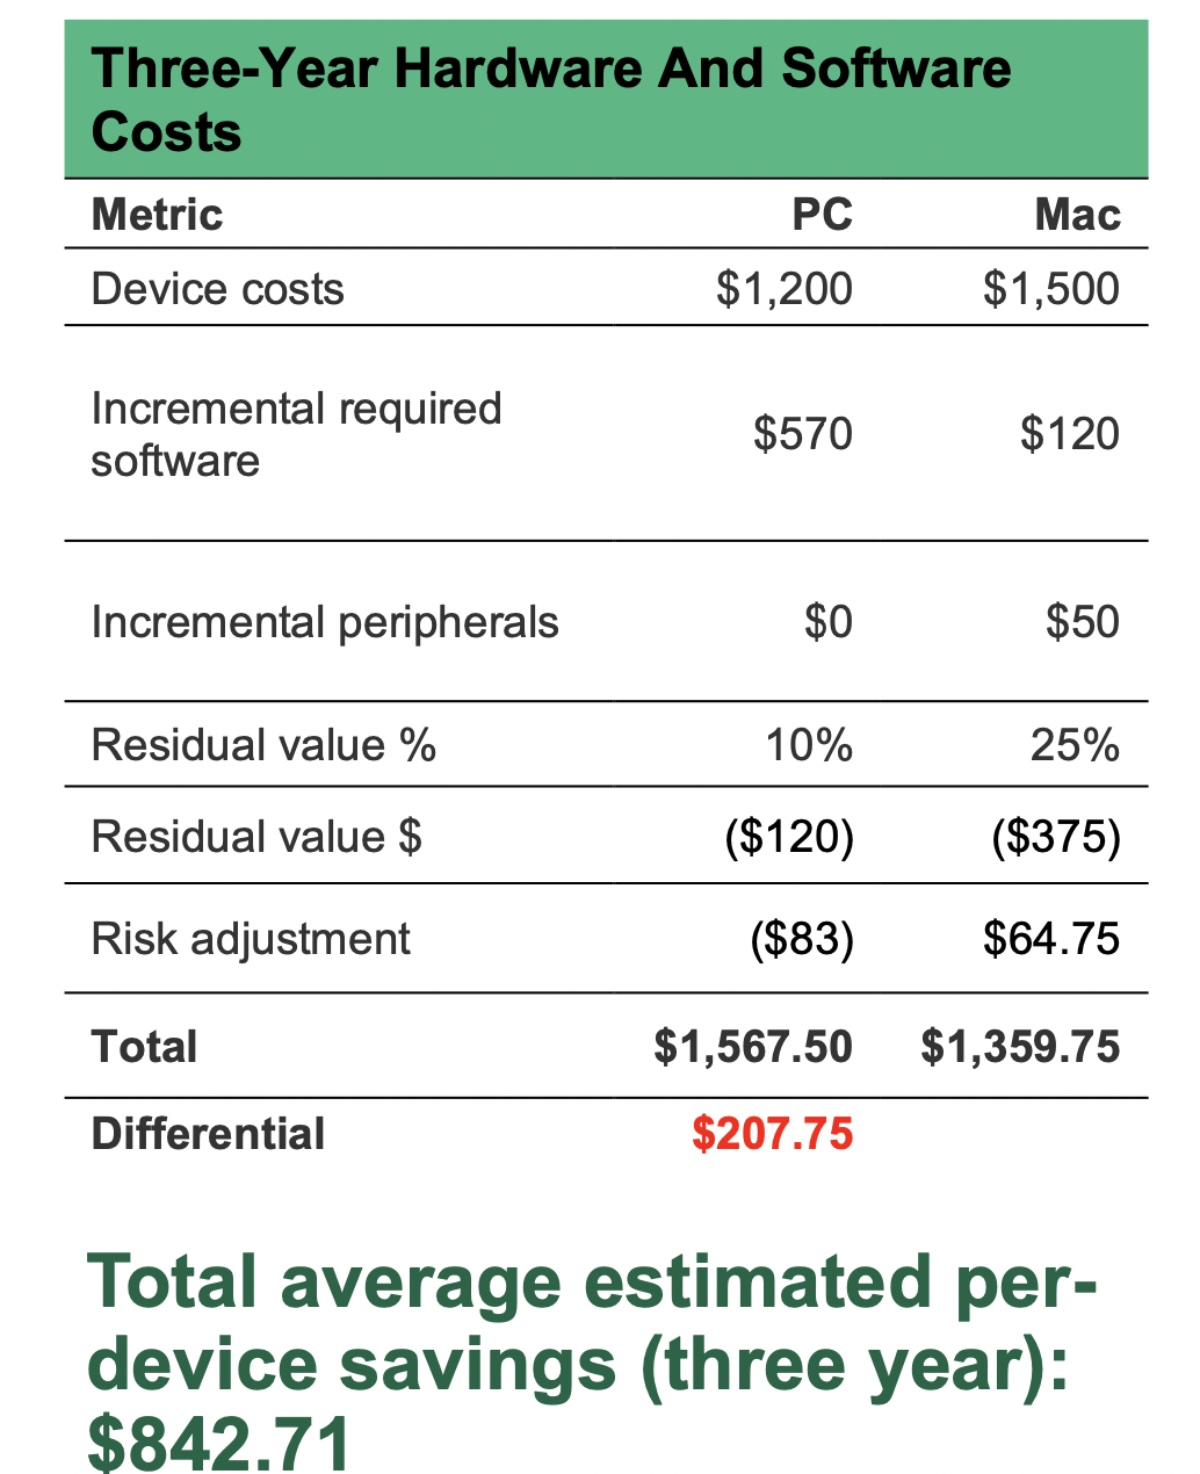 Companies can see cost savings and business benefits by going Mac